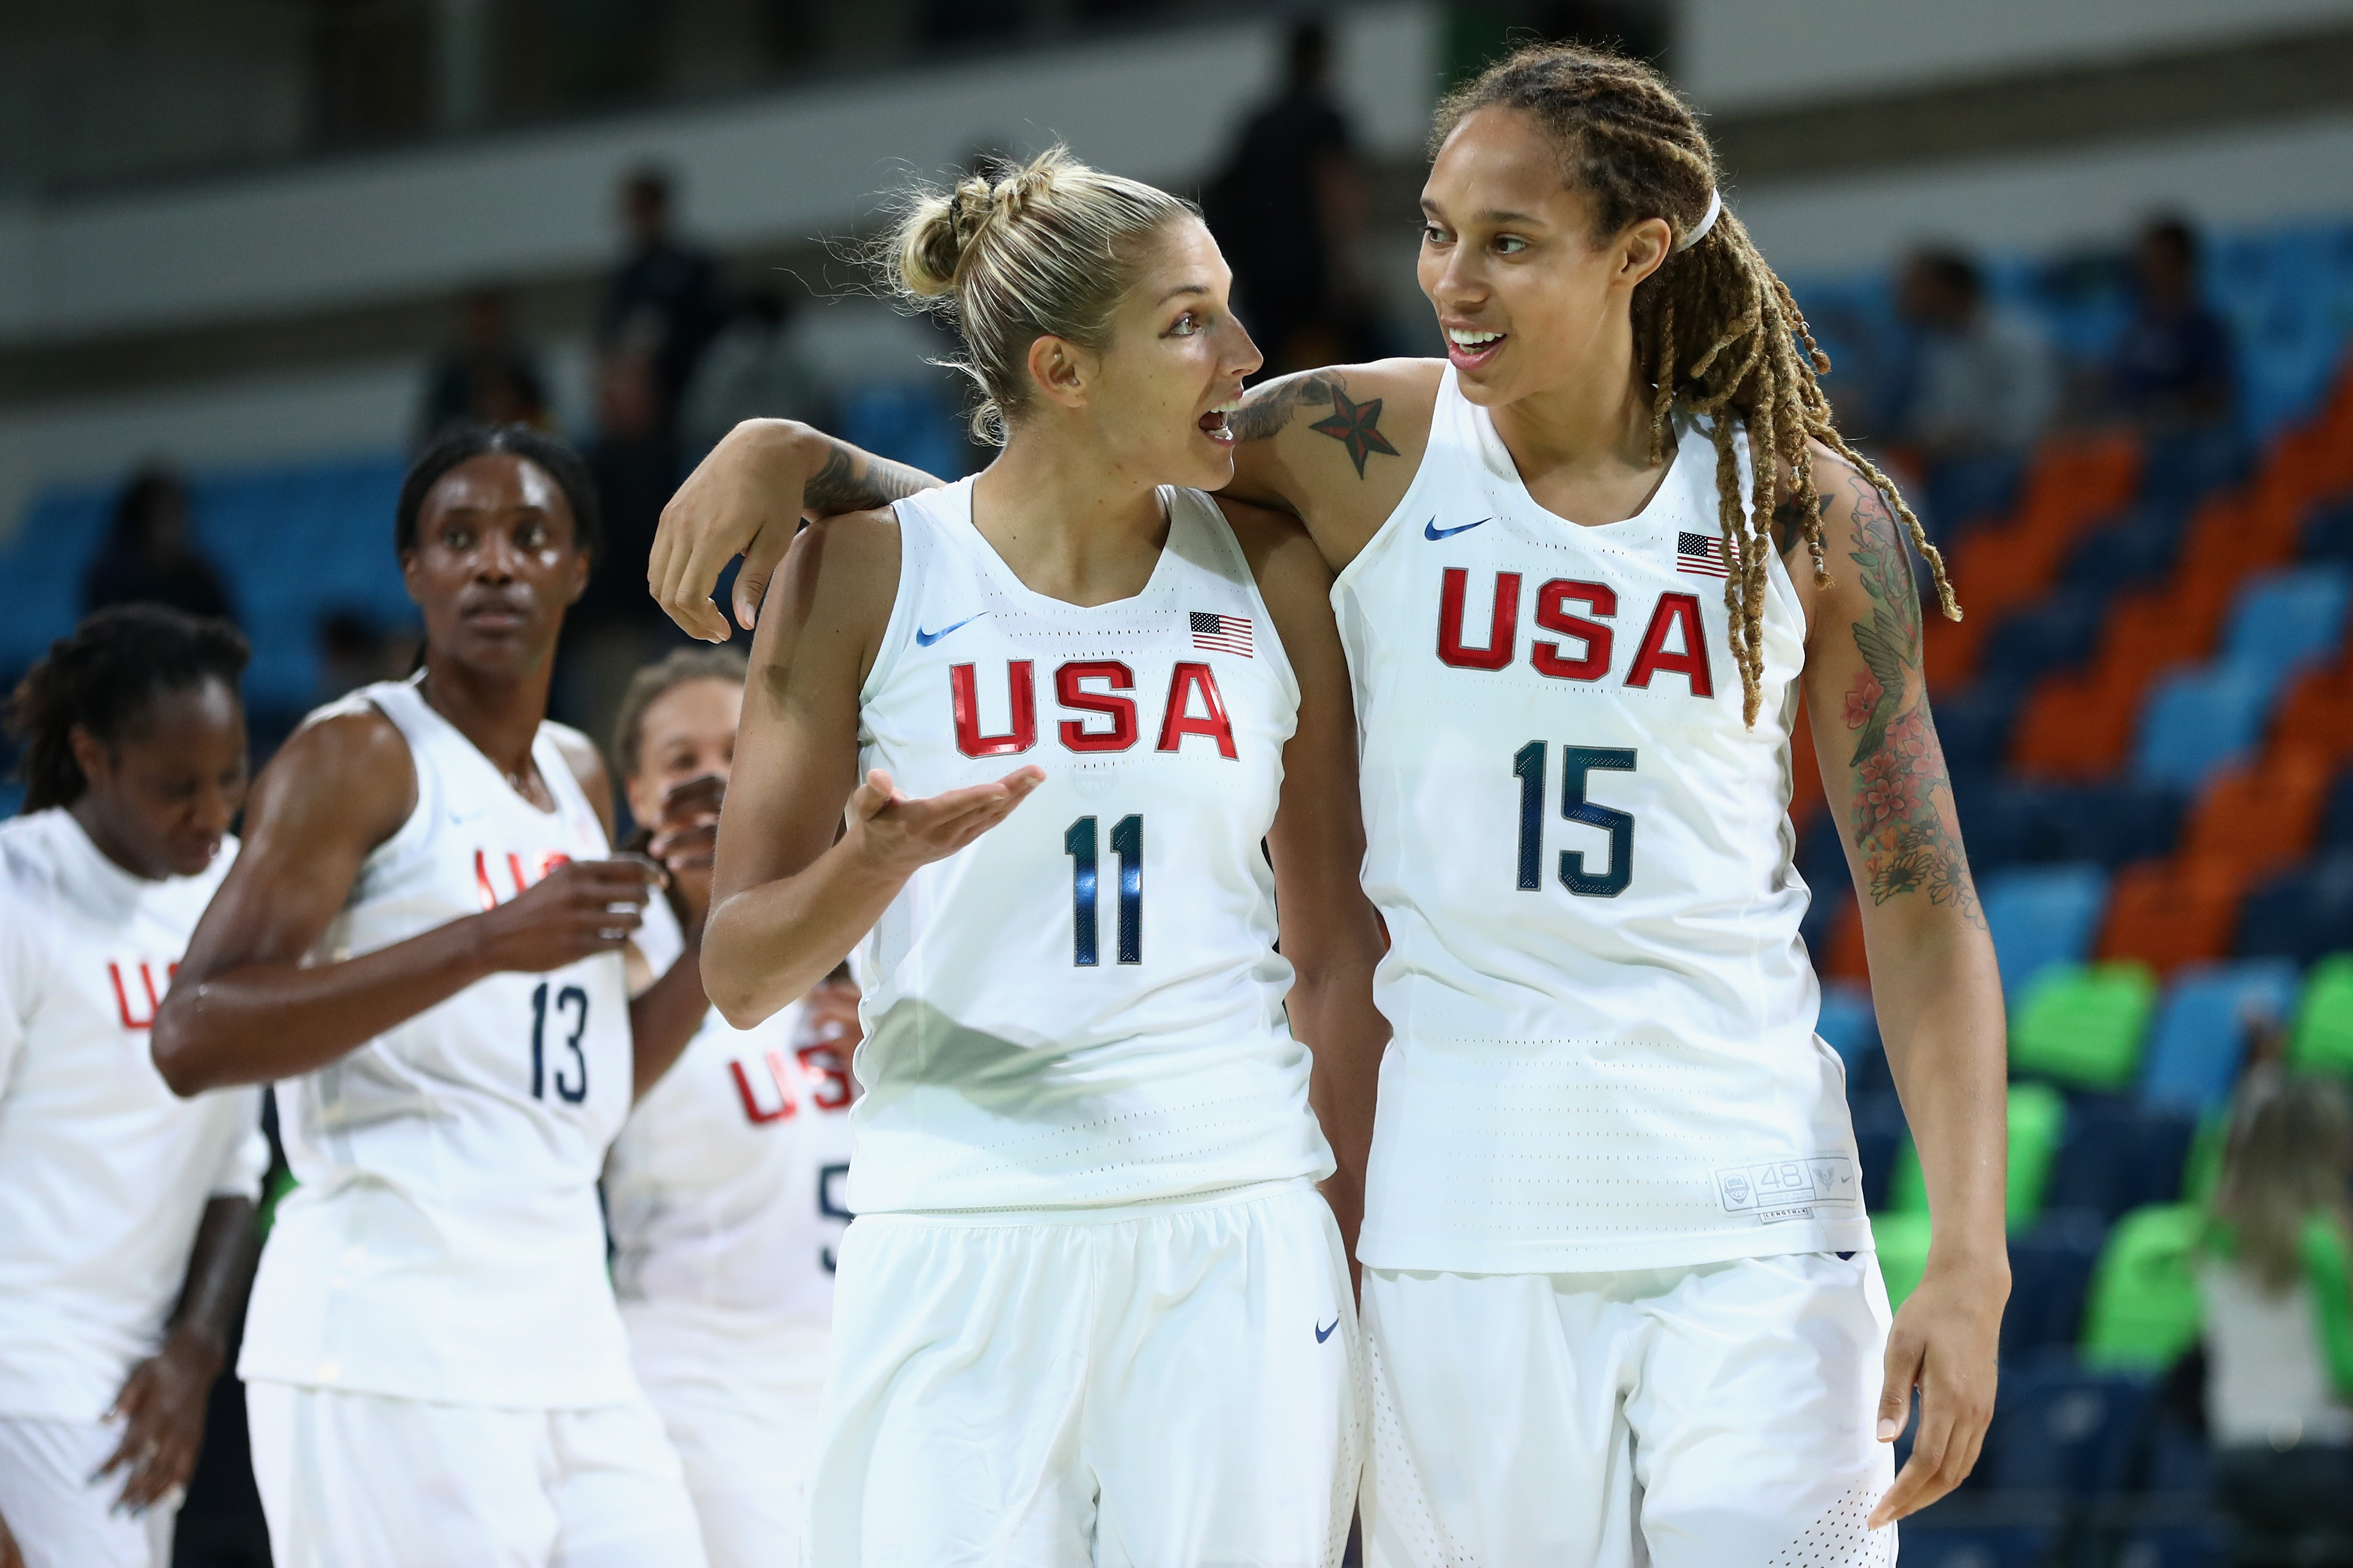 Wnba players sign letter opposing proposed texas bathroom bill